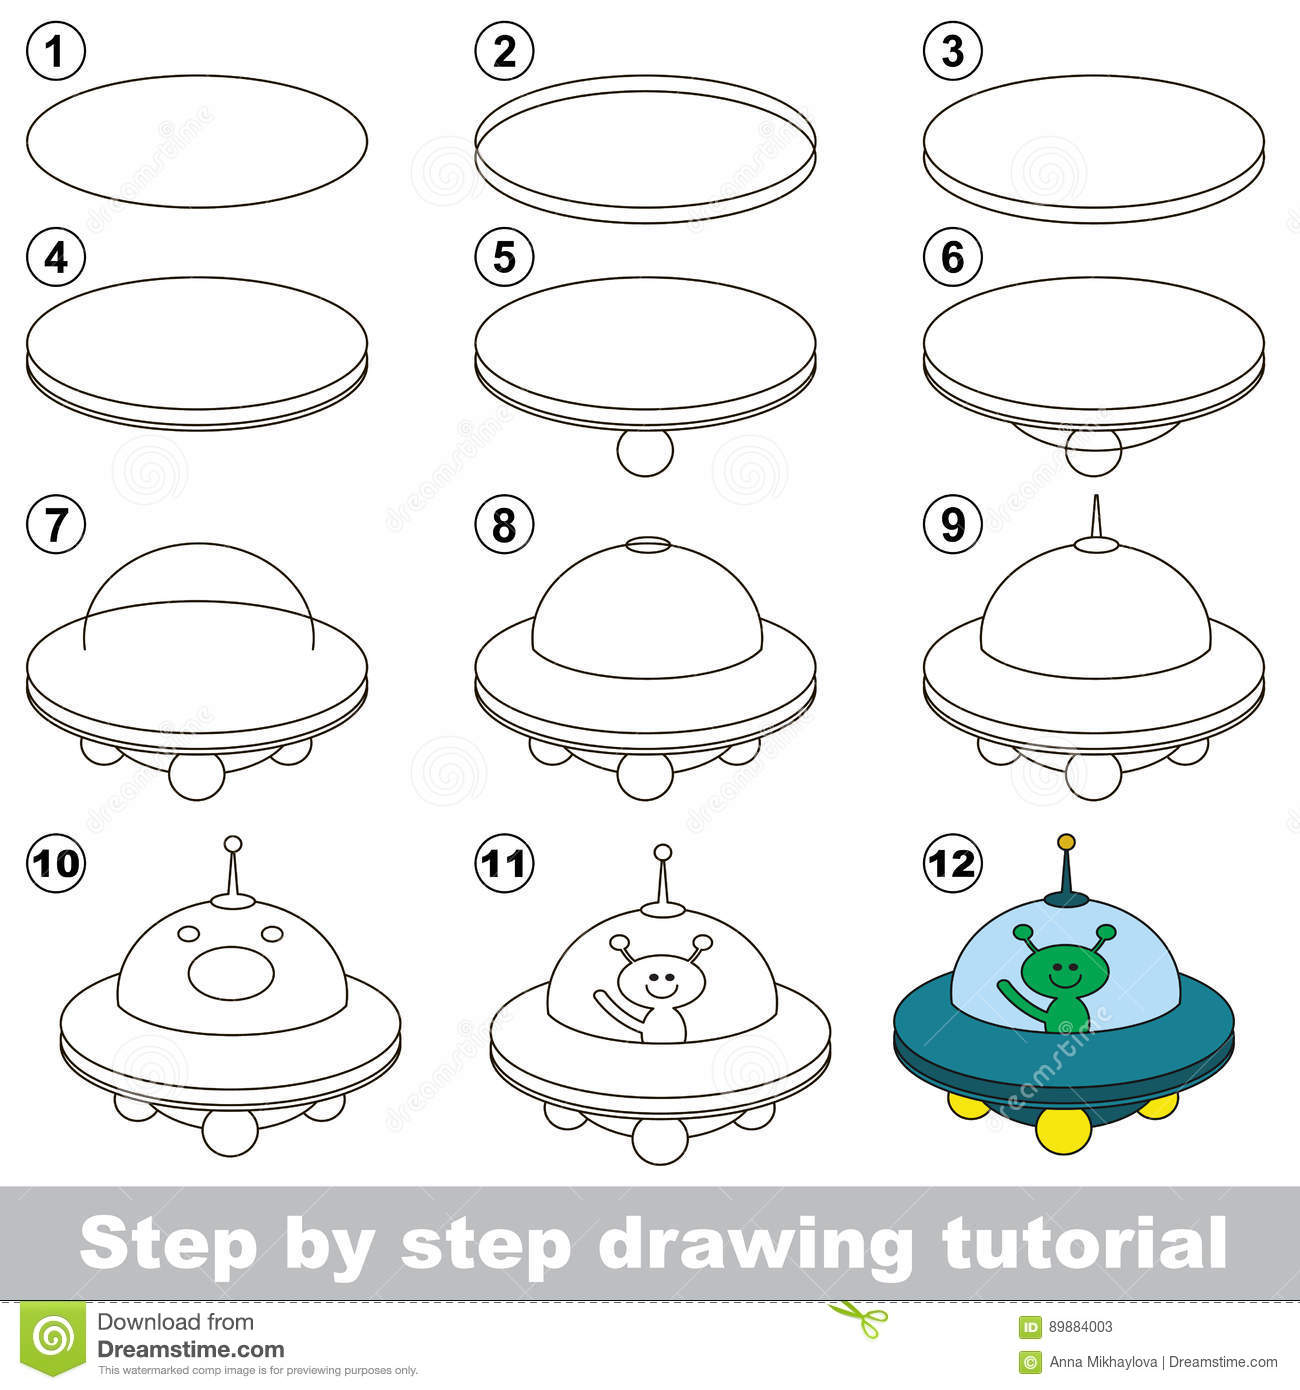 Drawing Tutorial Game For Ufo Stock Vector Illustration Of Step